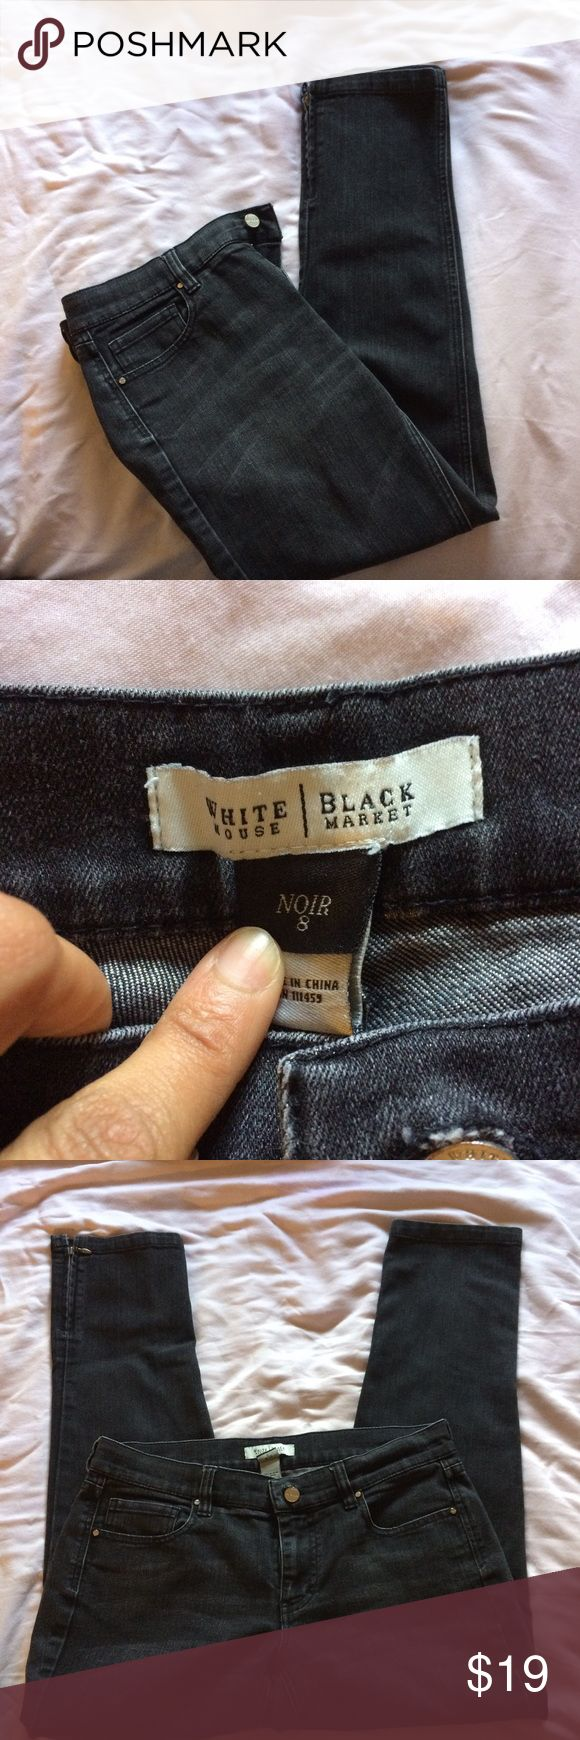 SALE WHBM black/grey jeans w/zipper detail White House black market black/dark grey jeans. Size 8R has zipper detail on each side of the pants. Fitted pant legs. Perfect condition women clothes. Sale cheap. No flaws would look great with heels and a sweater White House Black Market Pants